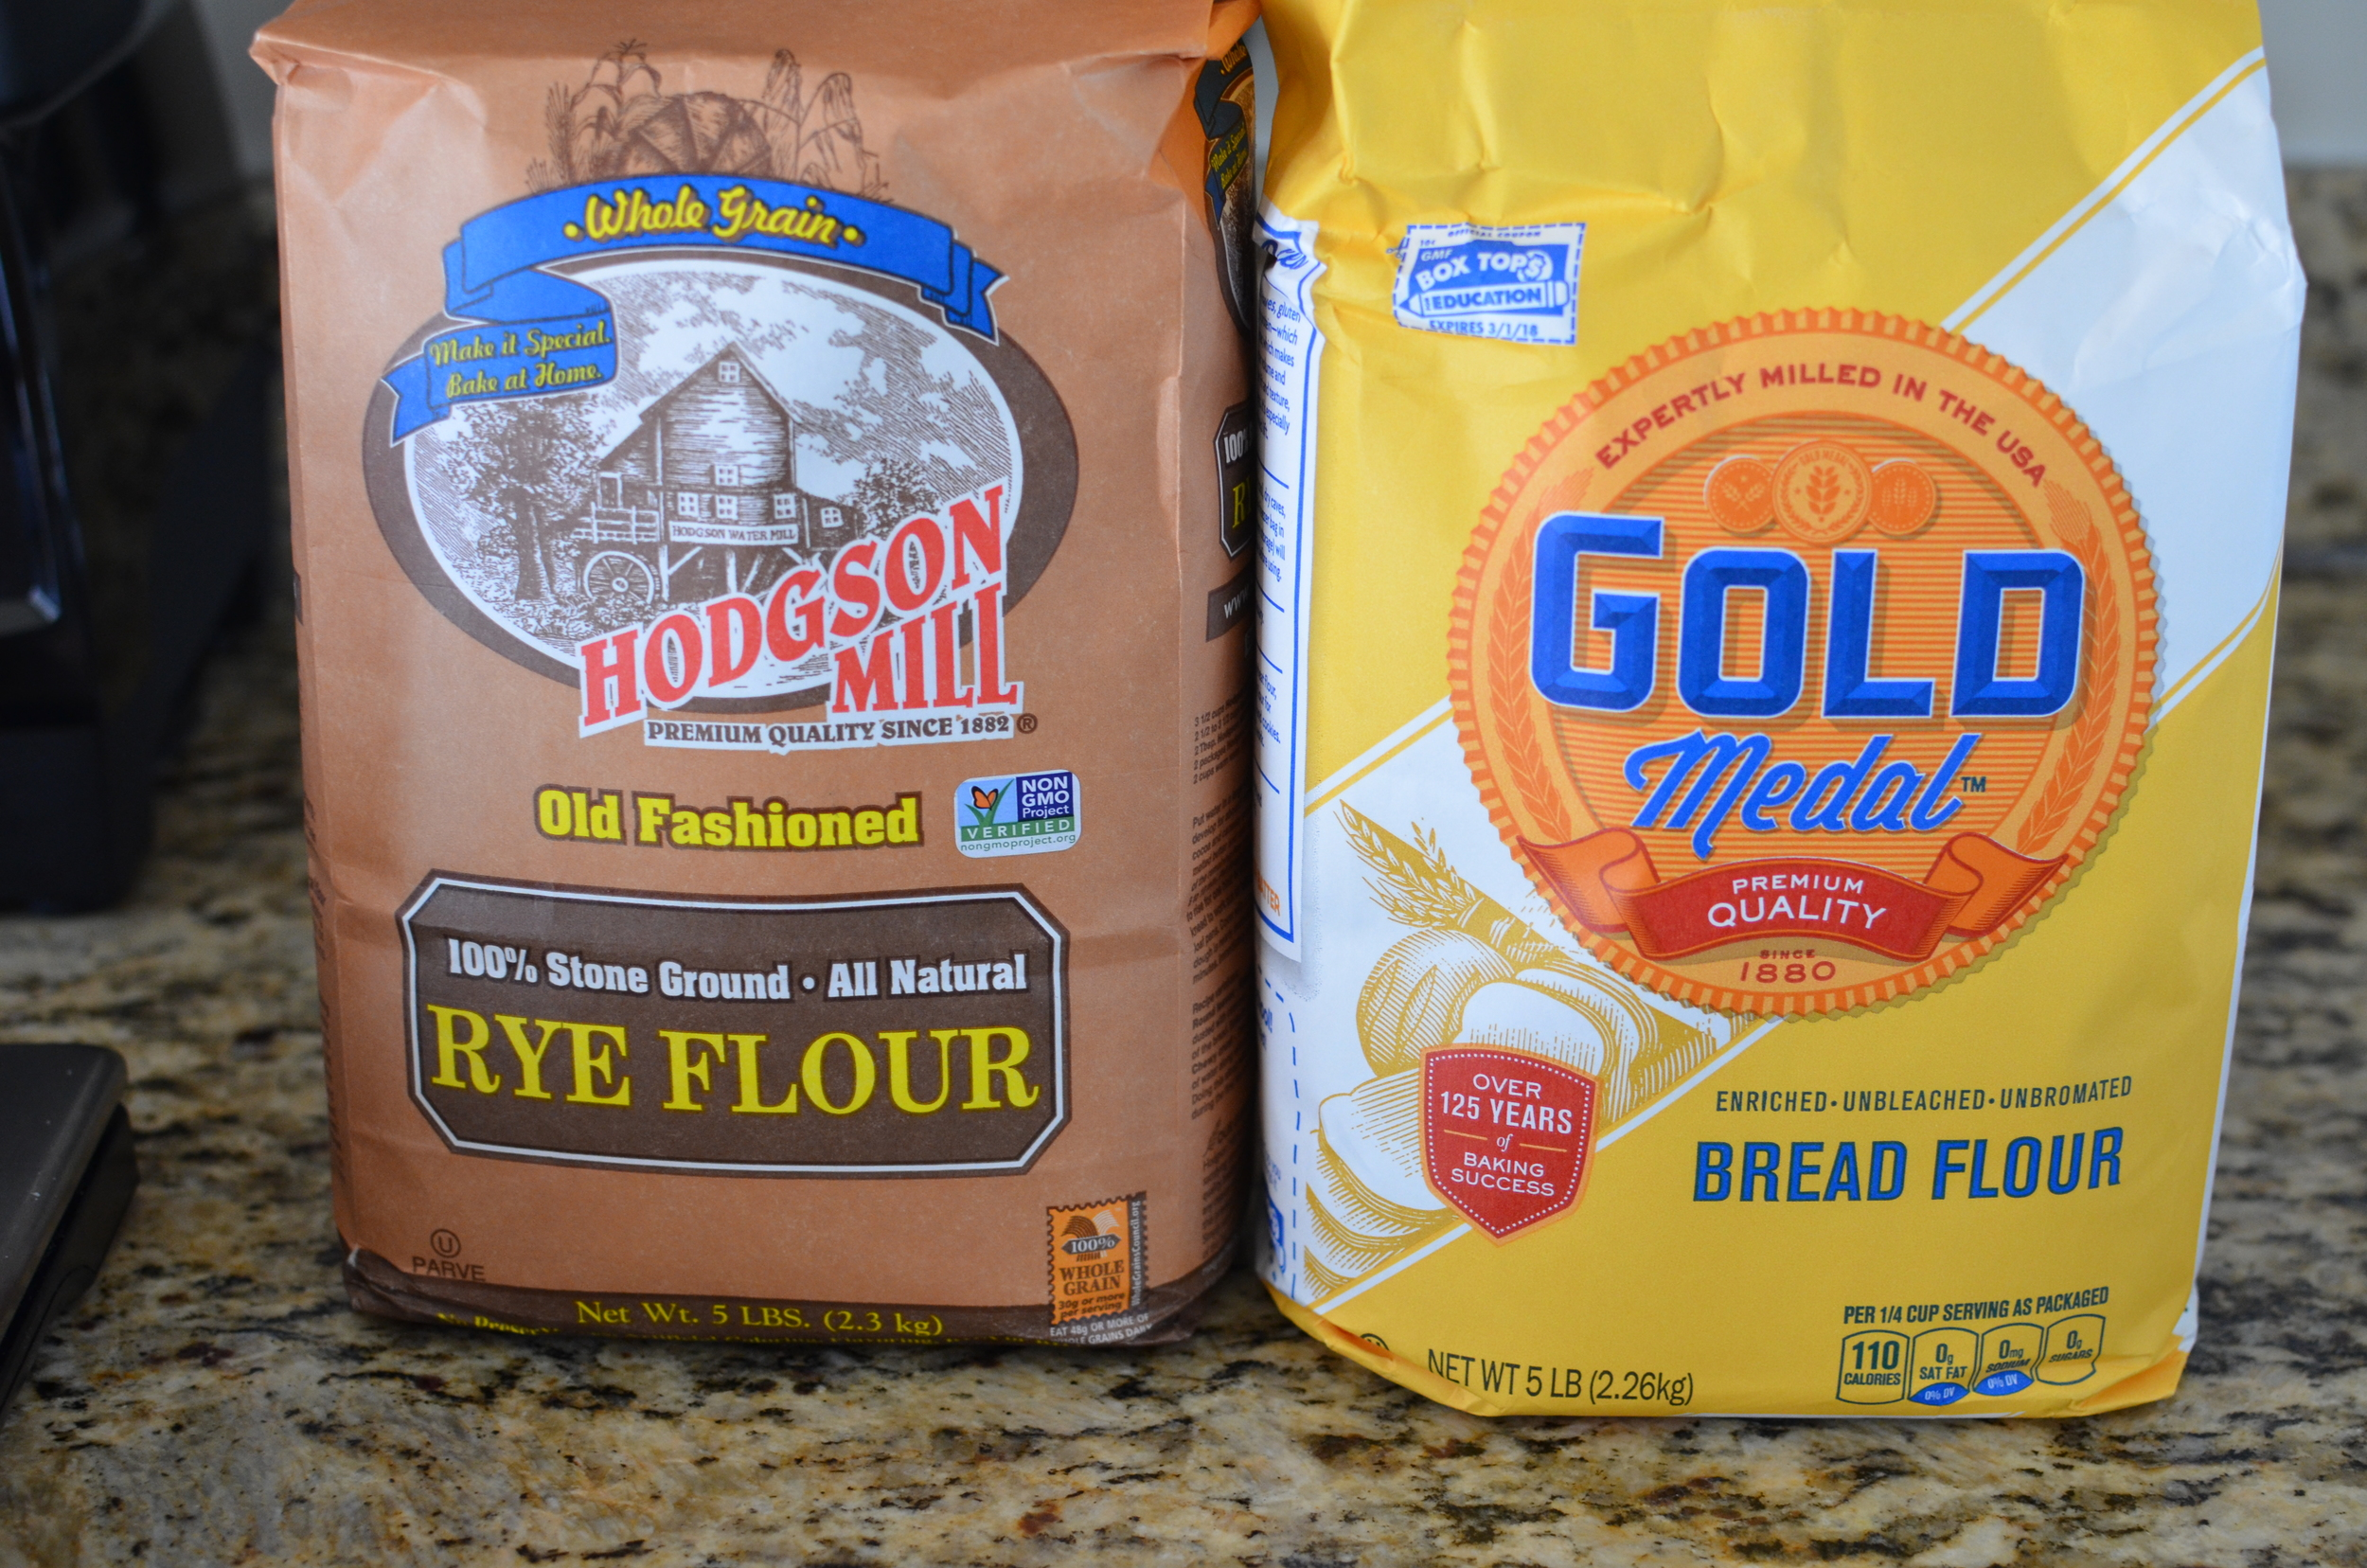 I wasn't able to find pumpernickel flour or coarse rye flour, but I did find stone ground rye. The recipe also calls for gold medal bread flour - it's much easier to find.  By the way, Rose apparently told one of the Alpha Bakers that the rye flour can be replaced with the same amount of bread flour, sothere you go.